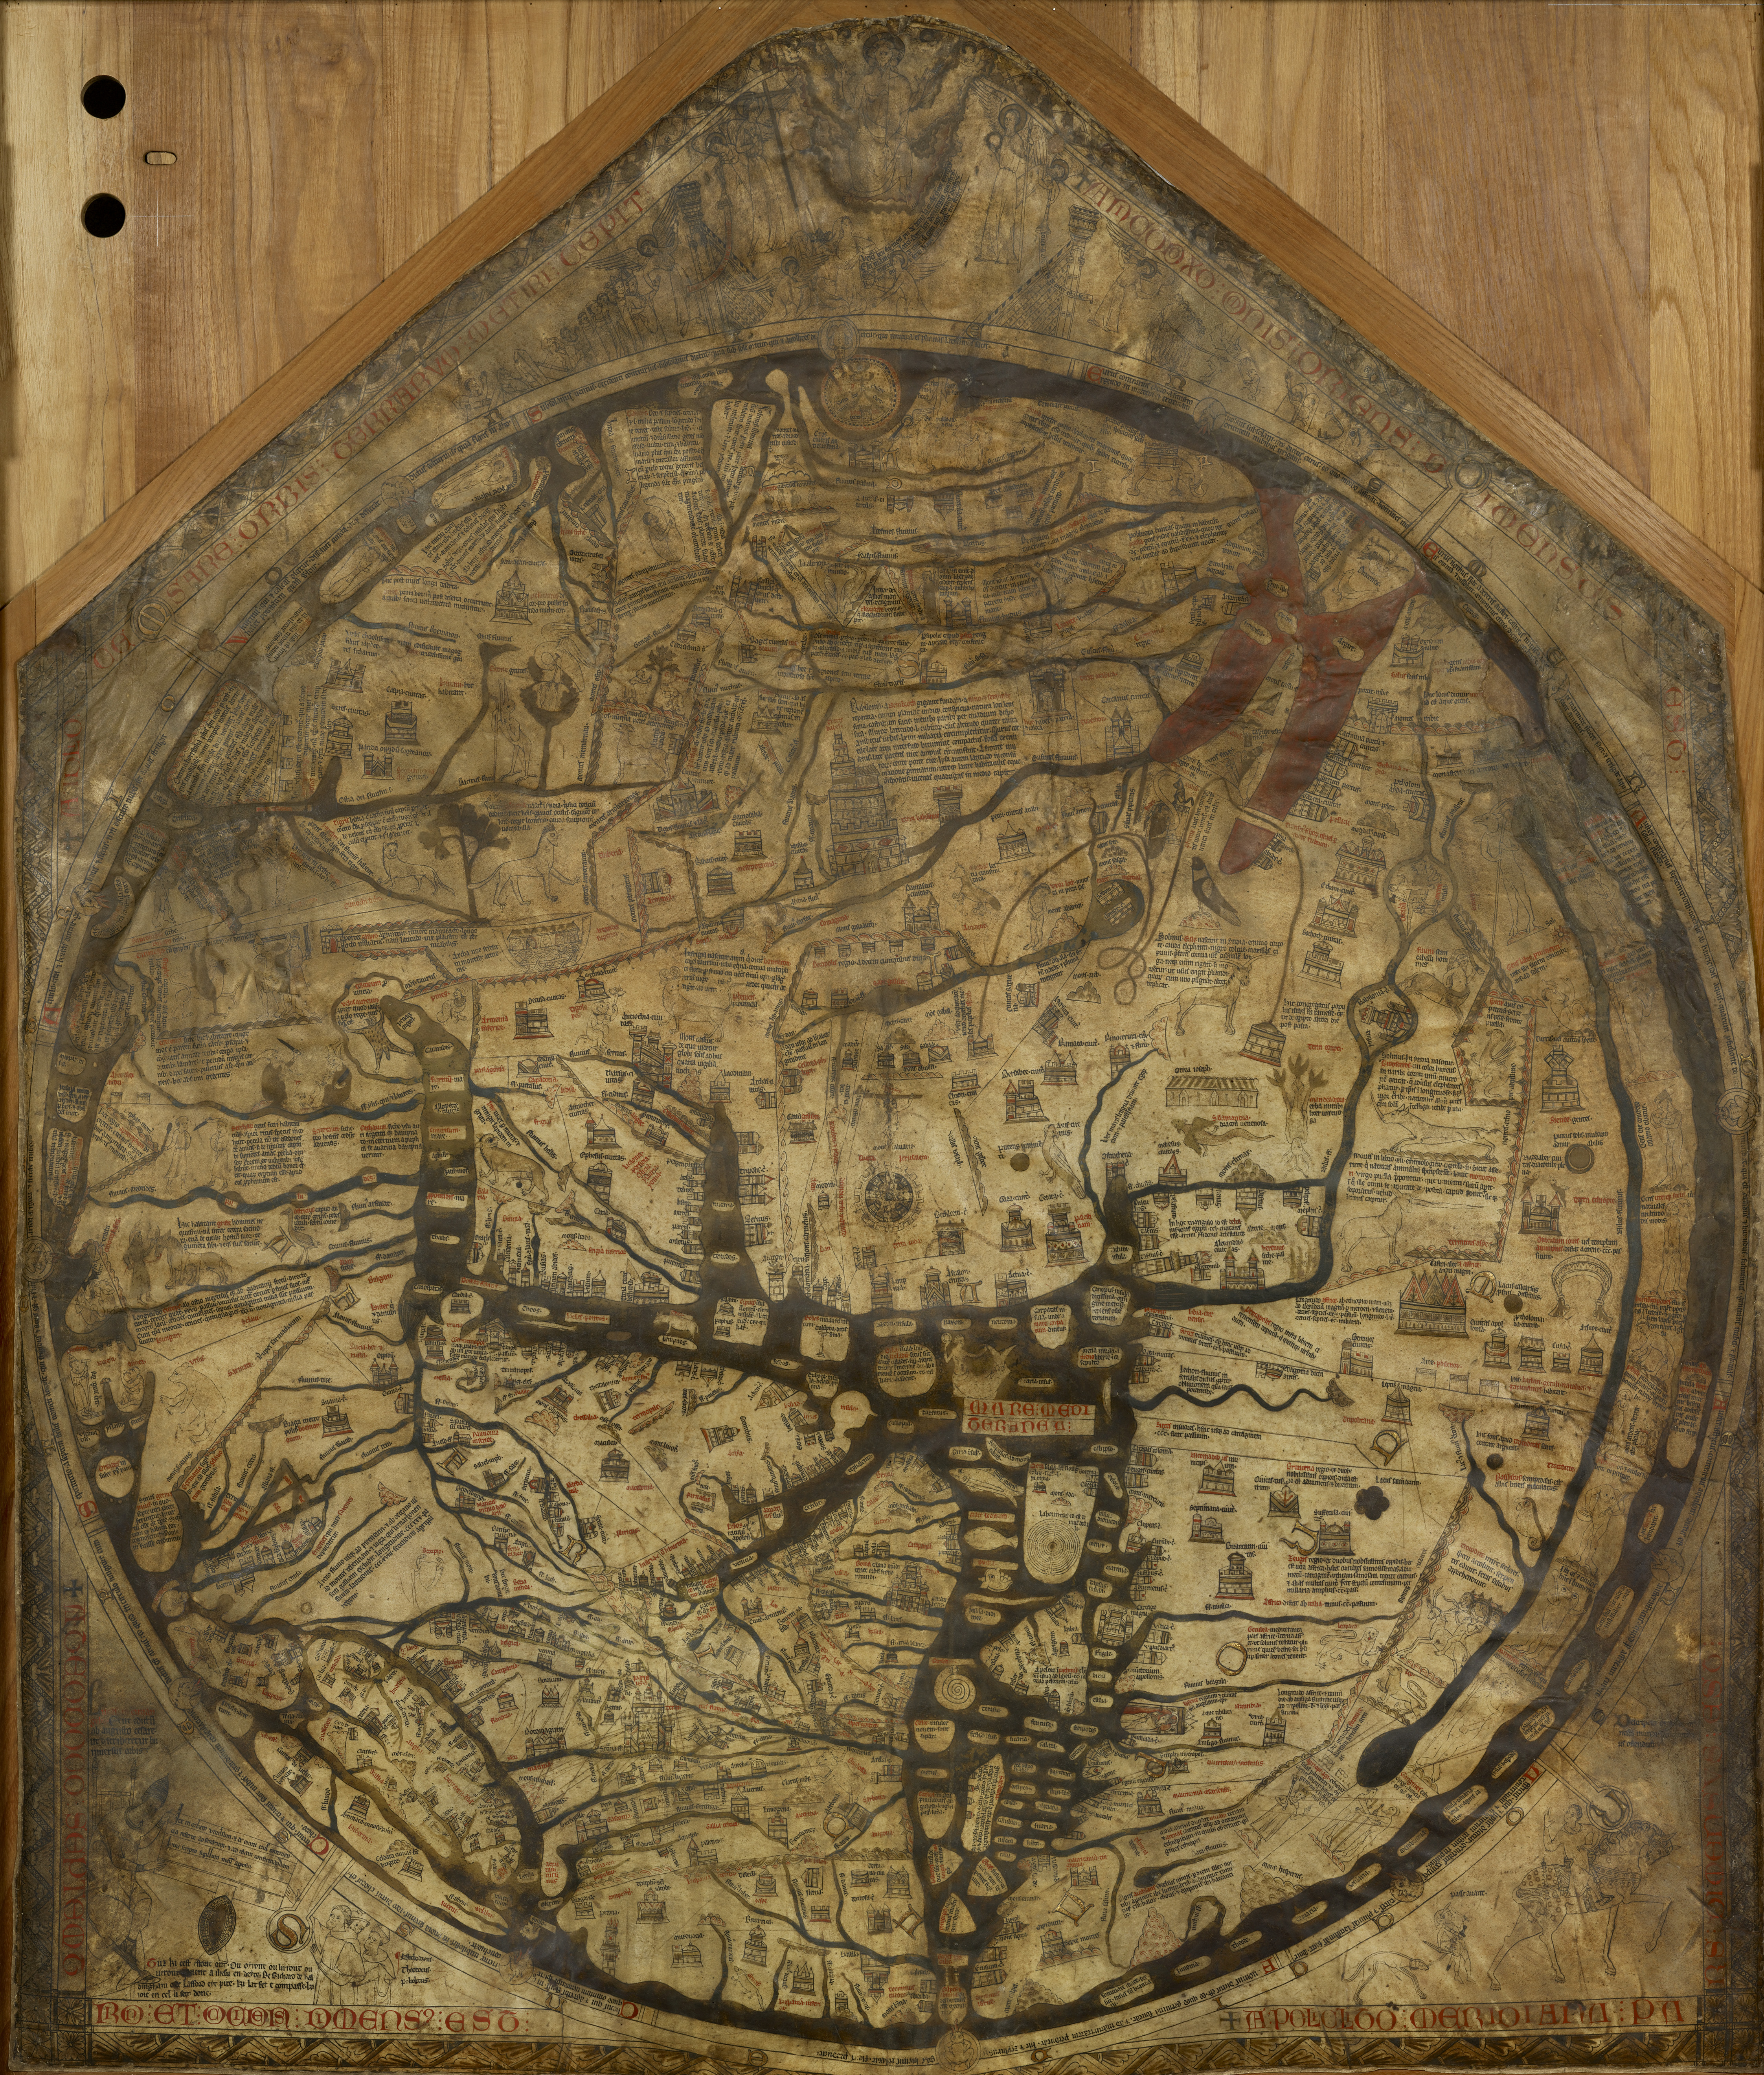 Hereford Mappa Mundi Whole